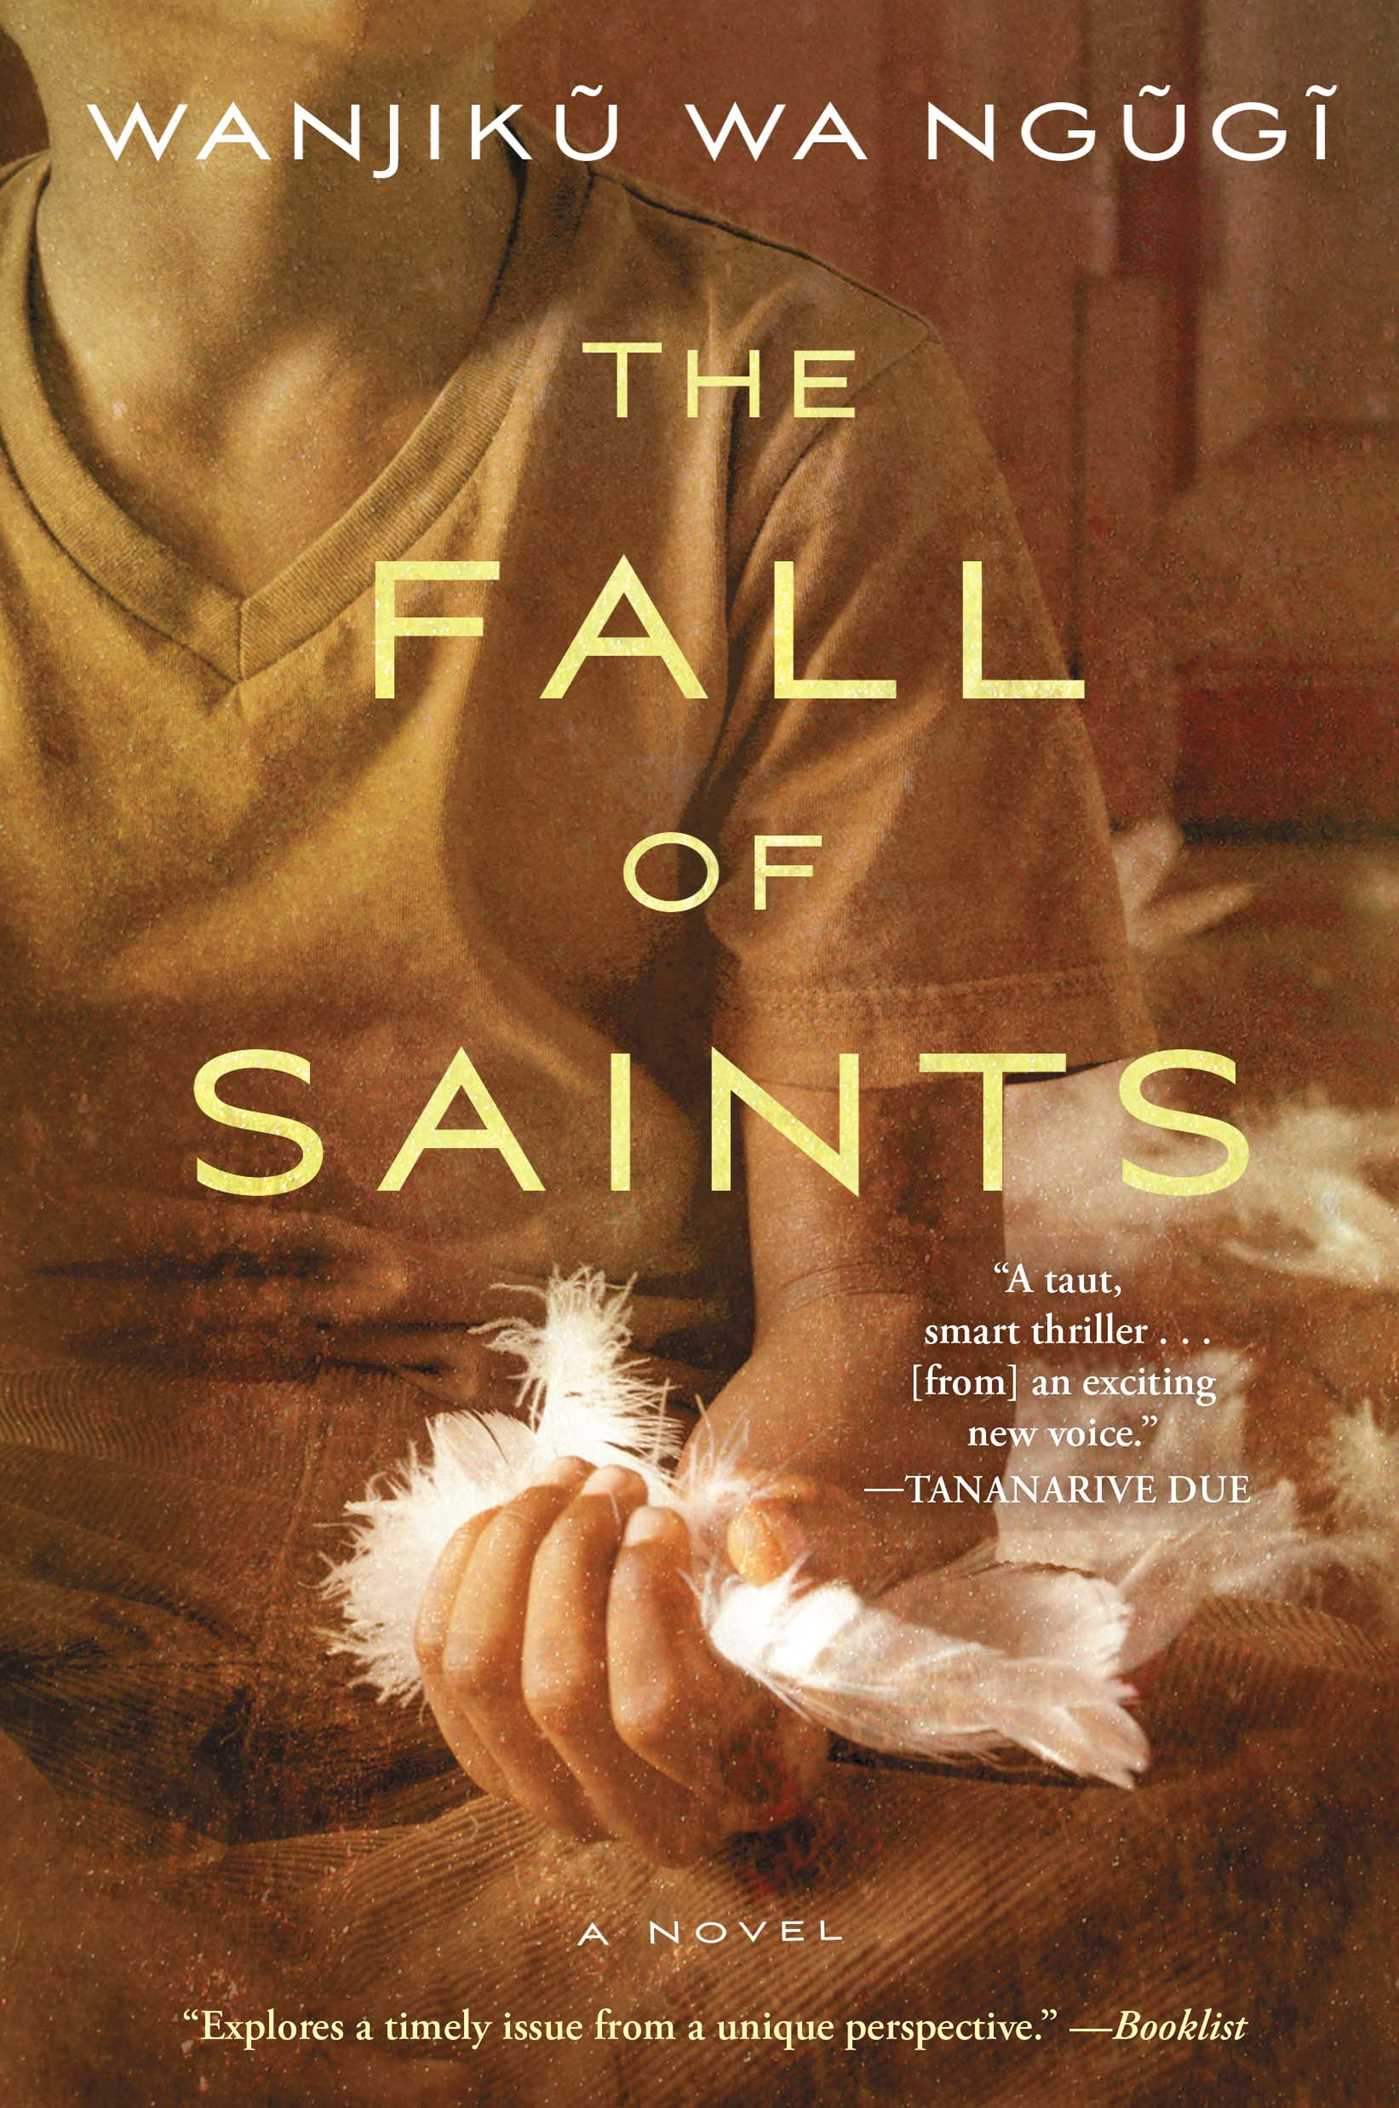 The-fall-of-saints-9781476714936_hr